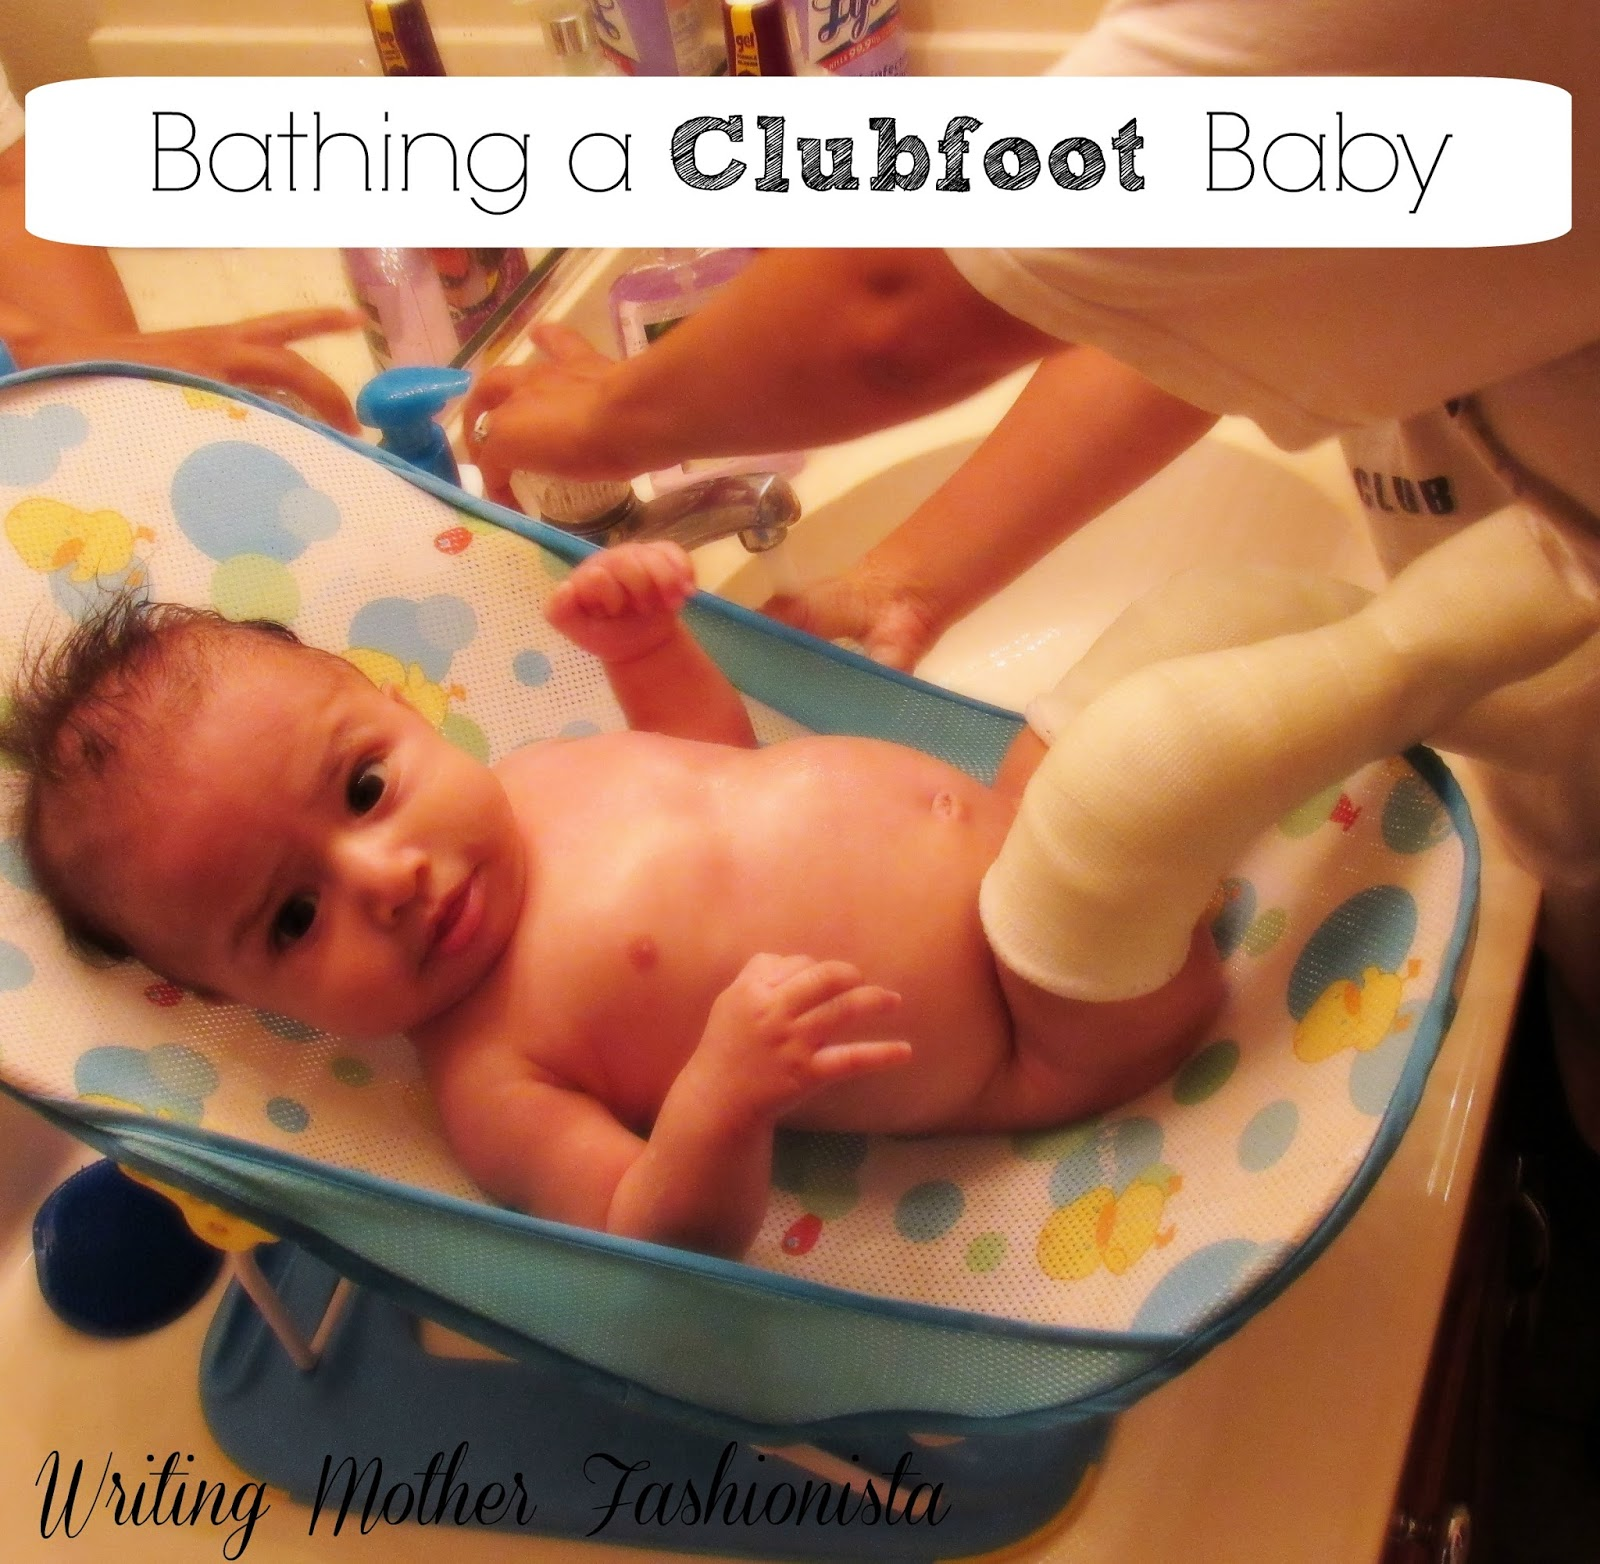 Writing Mother Fashionista: Bathing A Clubfoot Baby